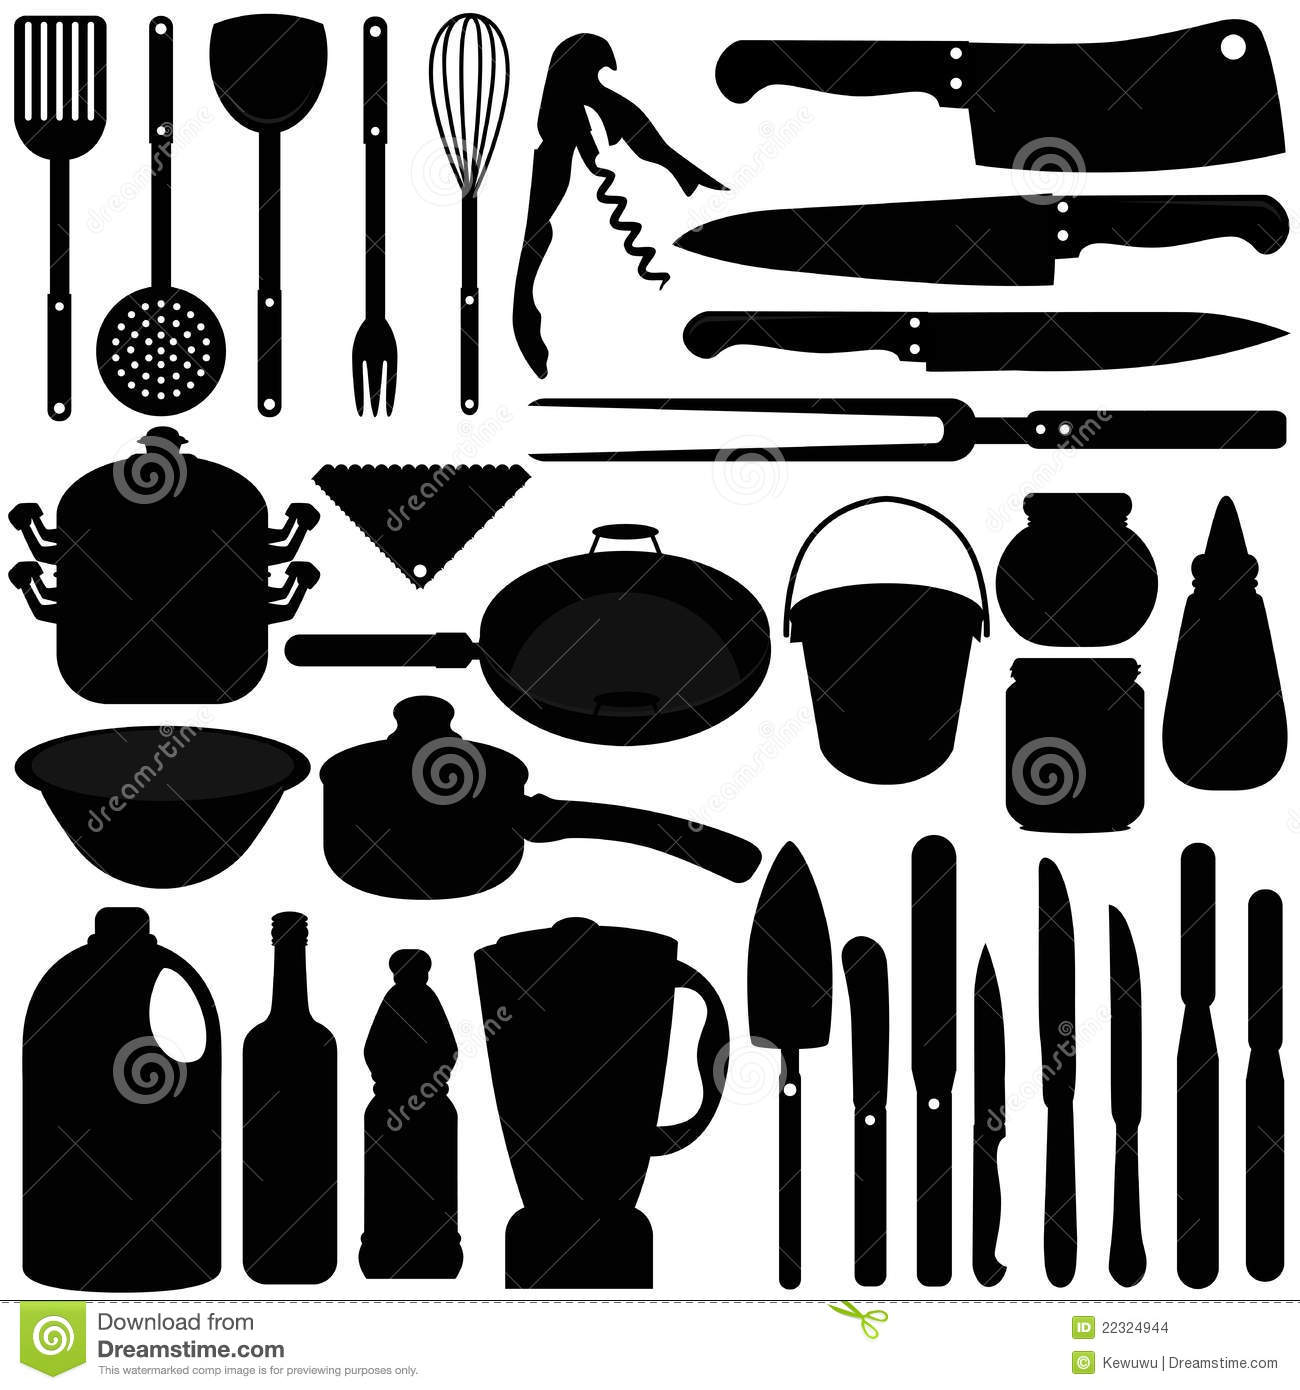 20 baking tools and equipments Looking for baking tools and equipments classification  here you can find the latest products in different kinds of baking tools and equipments classification we.